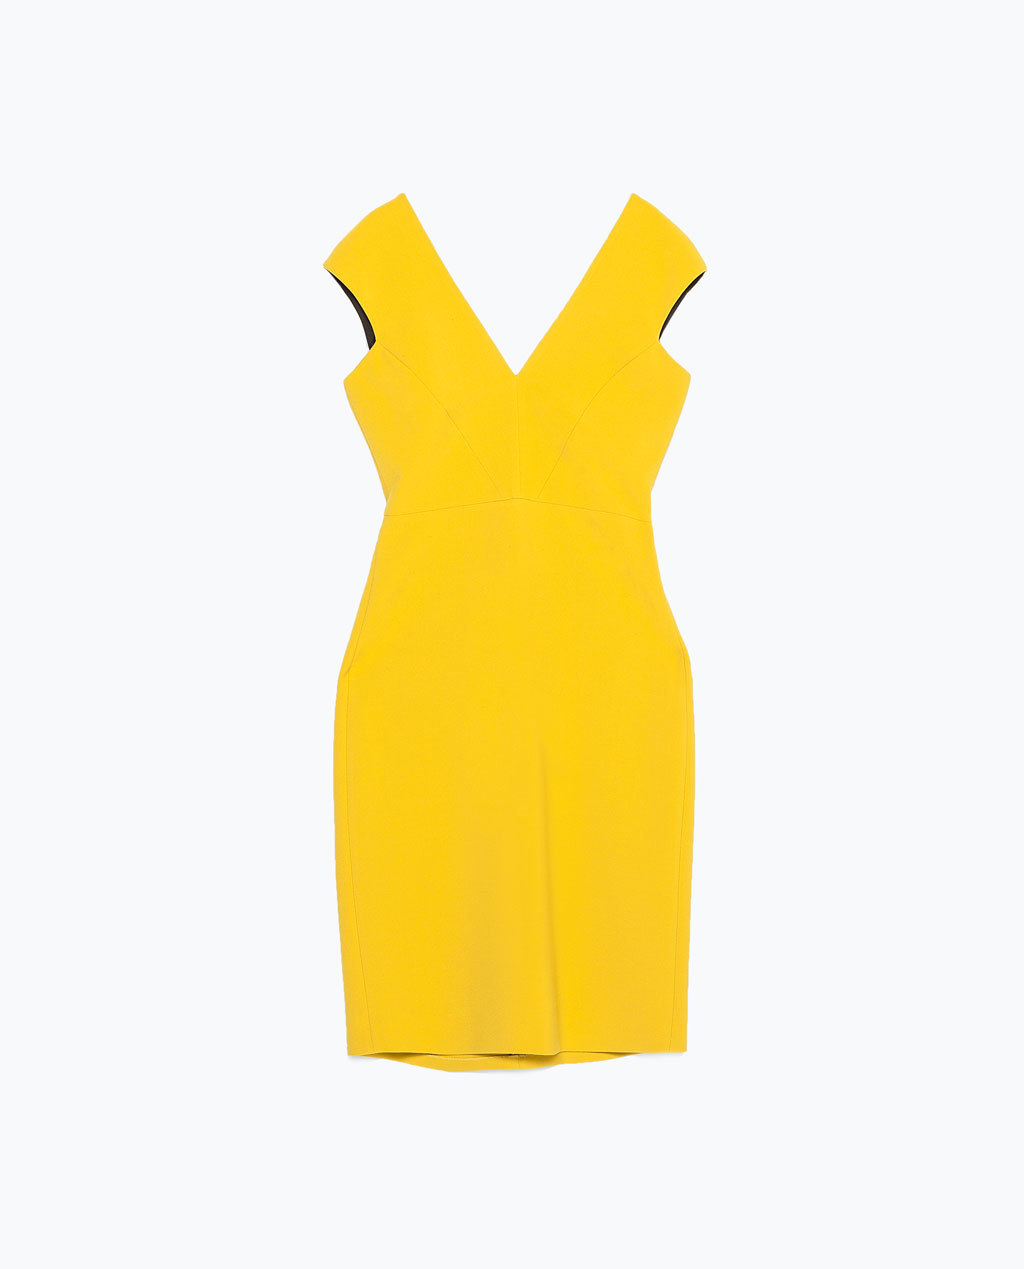 Shift Dress - style: shift; neckline: low v-neck; fit: tailored/fitted; pattern: plain; sleeve style: sleeveless; predominant colour: yellow; occasions: evening, occasion, creative work; length: just above the knee; sleeve length: sleeveless; texture group: crepes; pattern type: fabric; season: s/s 2015; wardrobe: highlight